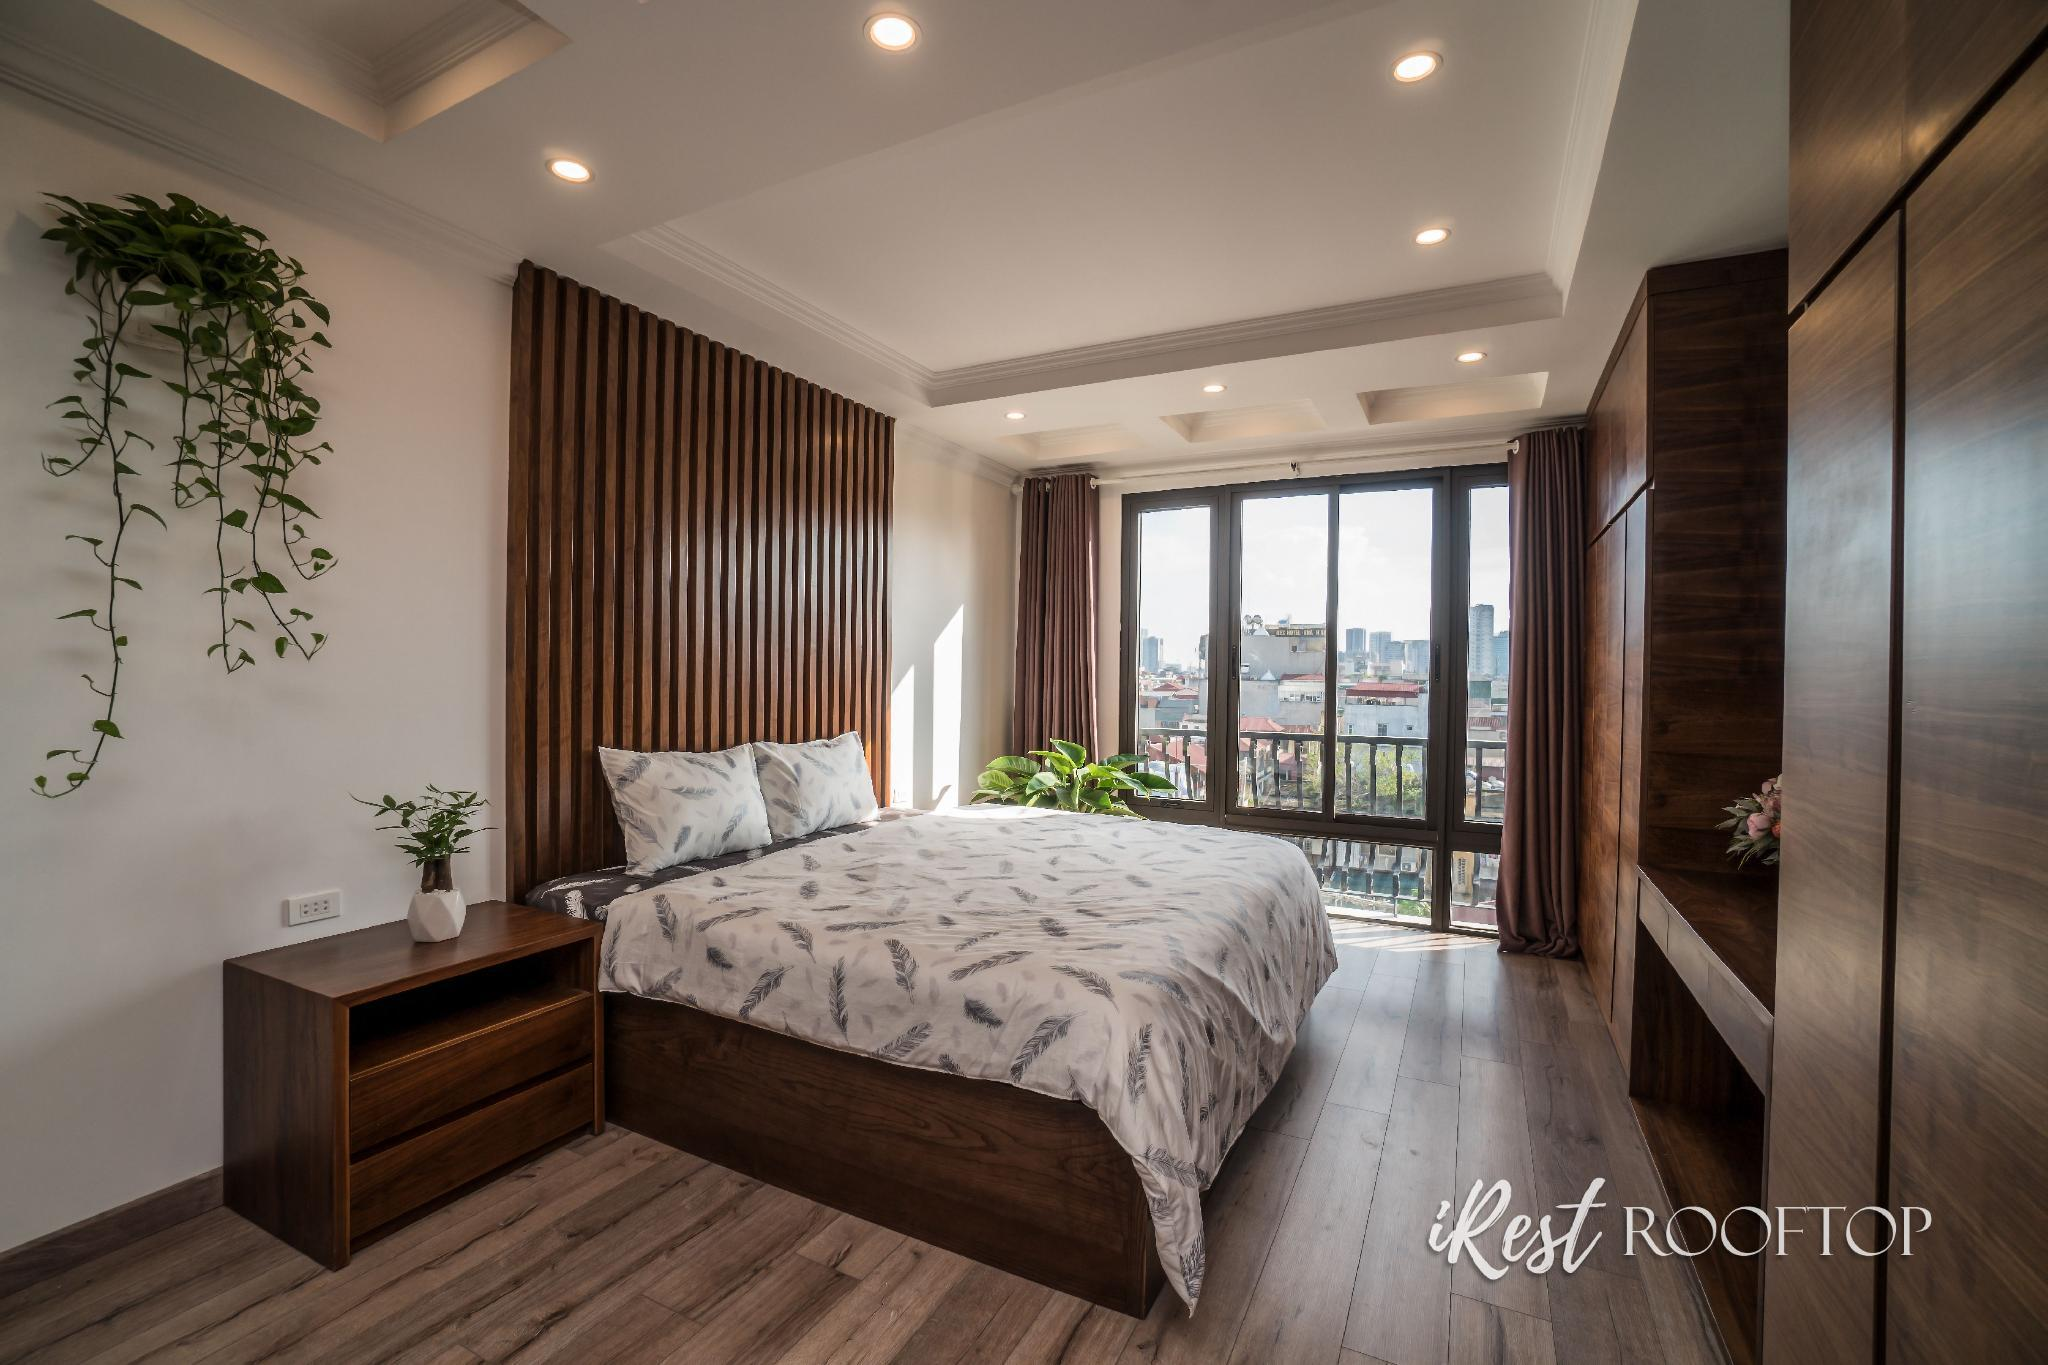 IREST ROOFTOP   5BR With Big Terrace And Livingroom